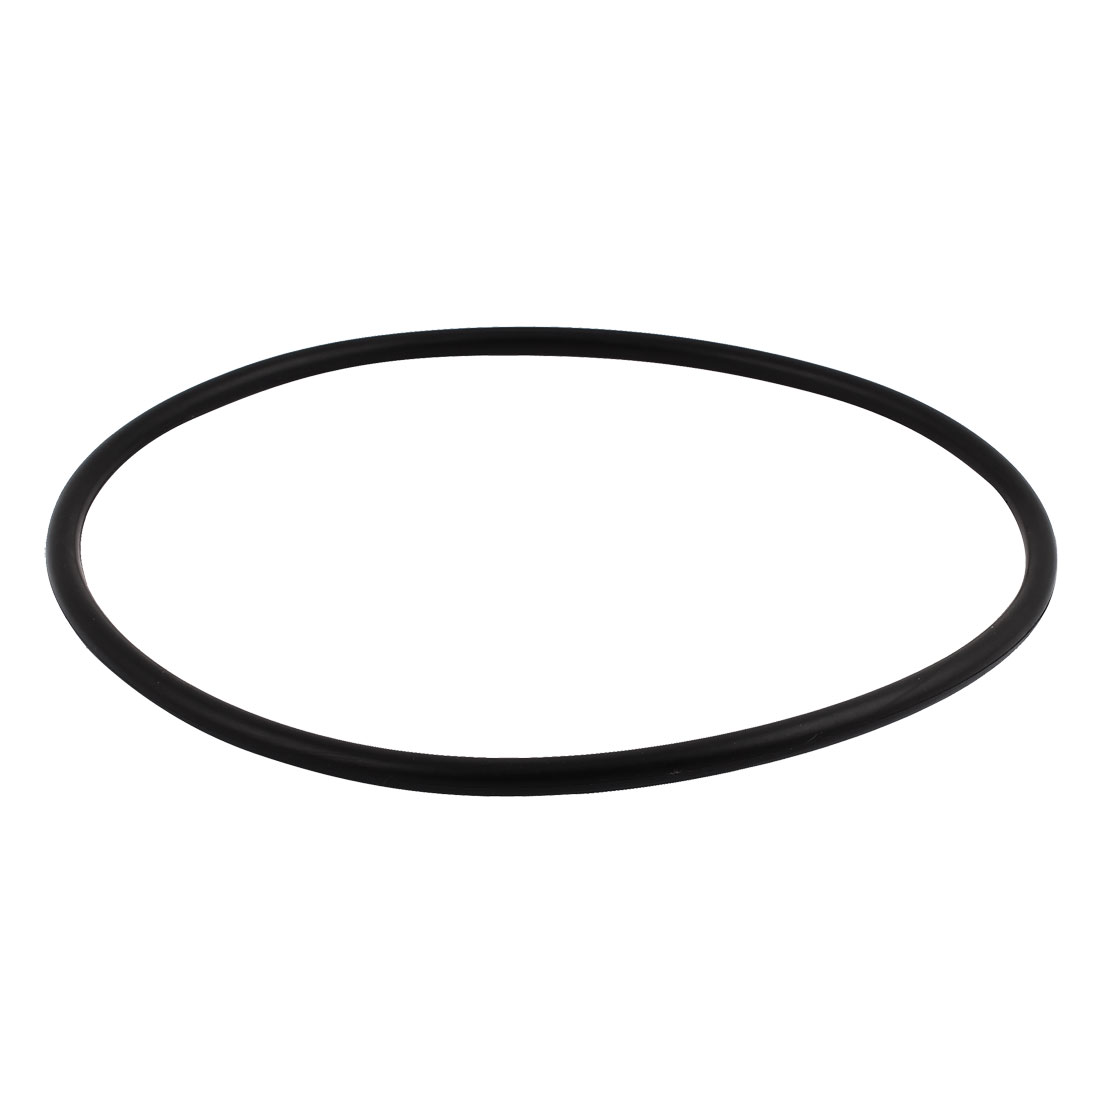 Black Universal O-Ring 240mm x 8.6mm BUNA-N Material Oil Seal Washers Grommets